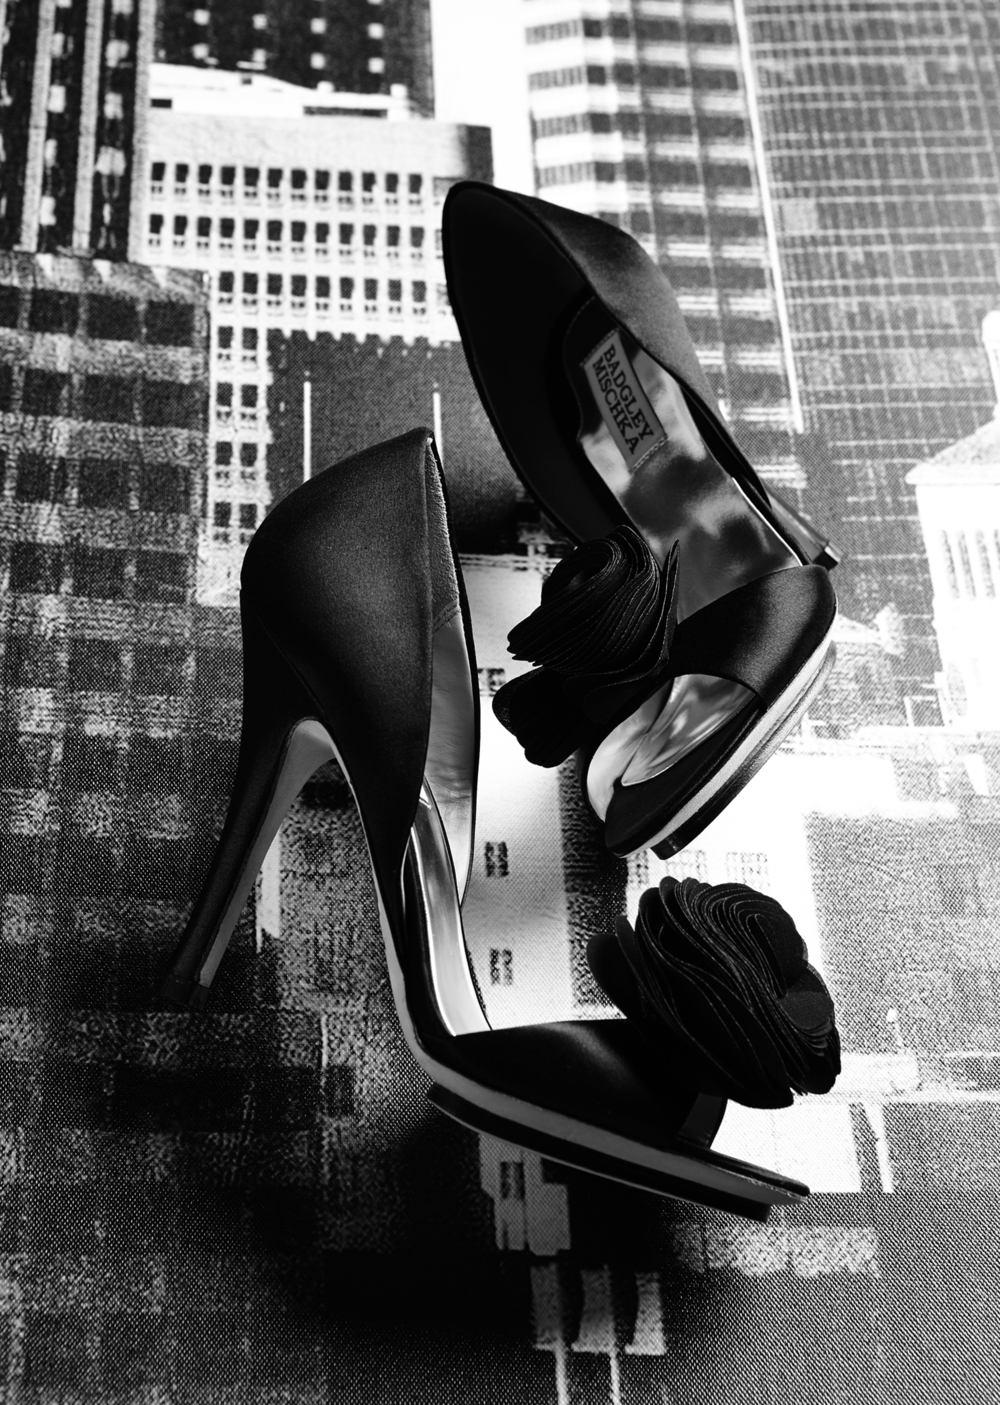 shoes b and w.jpg